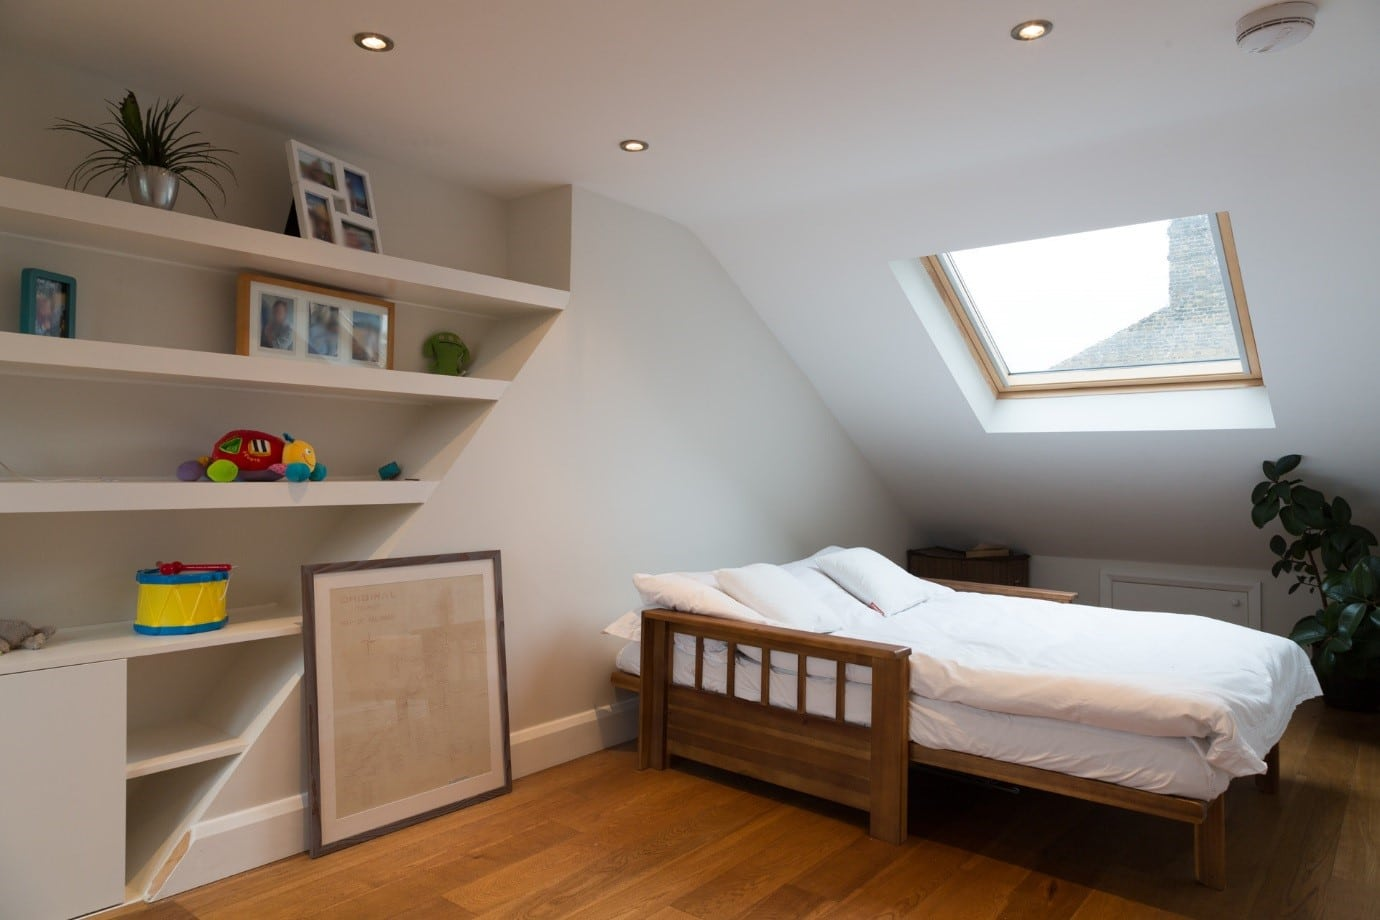 Dormer Bedroom Ideas dormer loft conversion ideas - simply loft london loft conversions